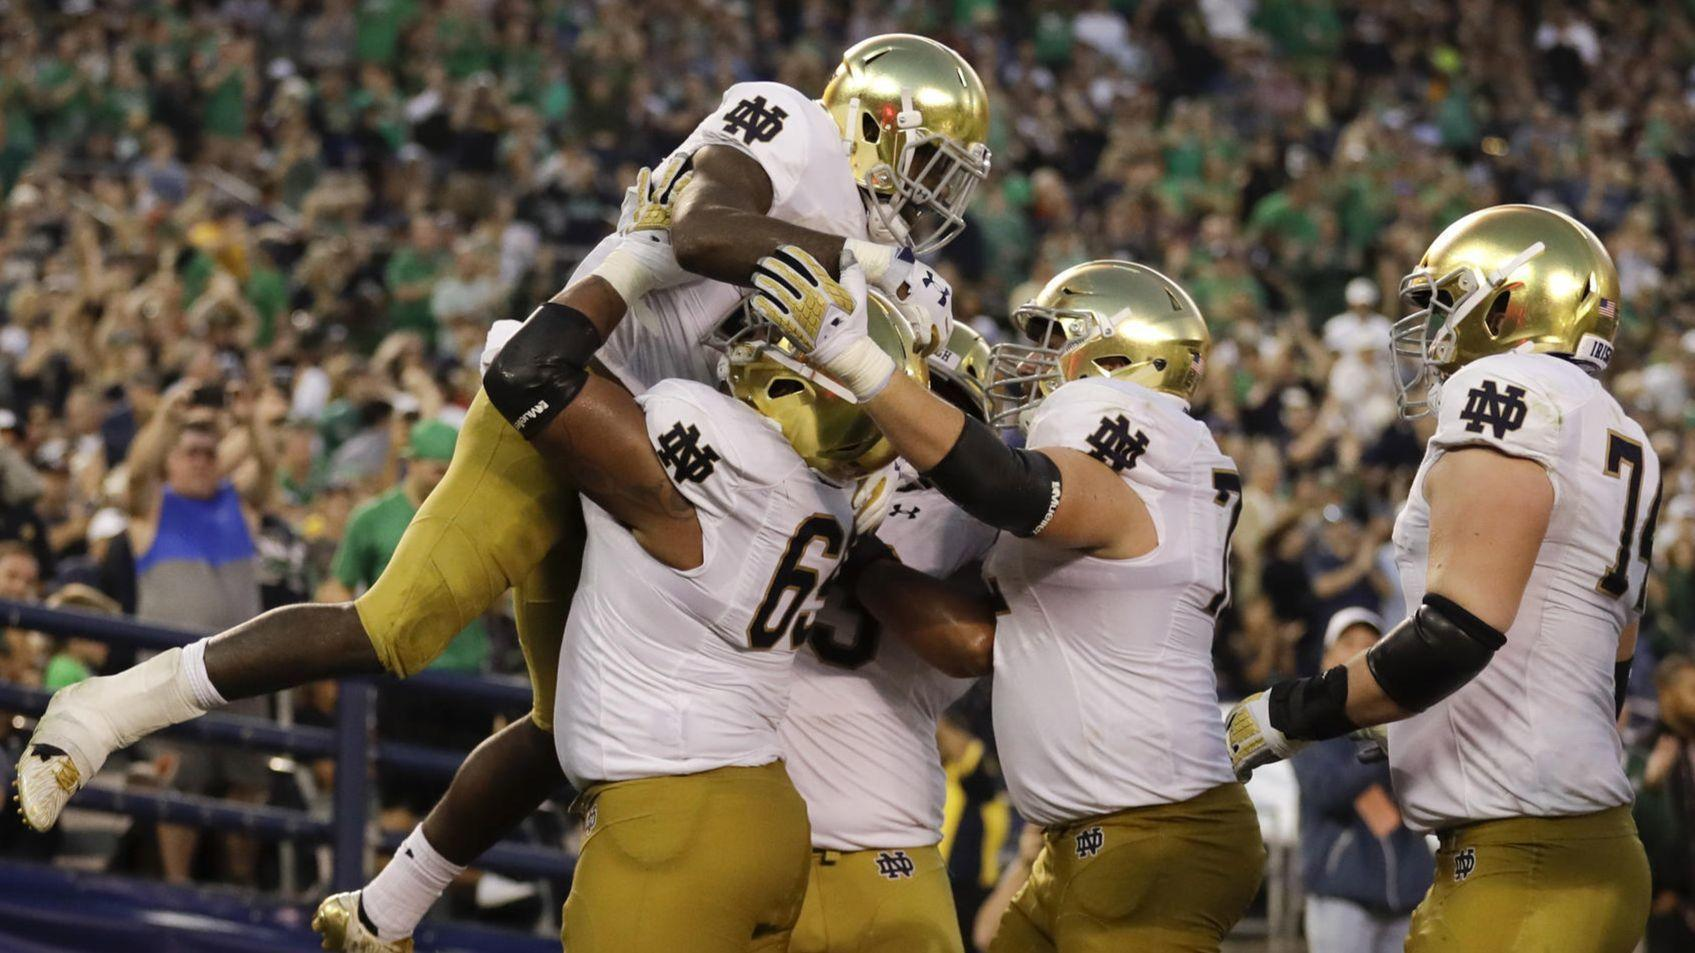 Notre Dame releases its full 2021 football schedule, starting with a trip to Florida State